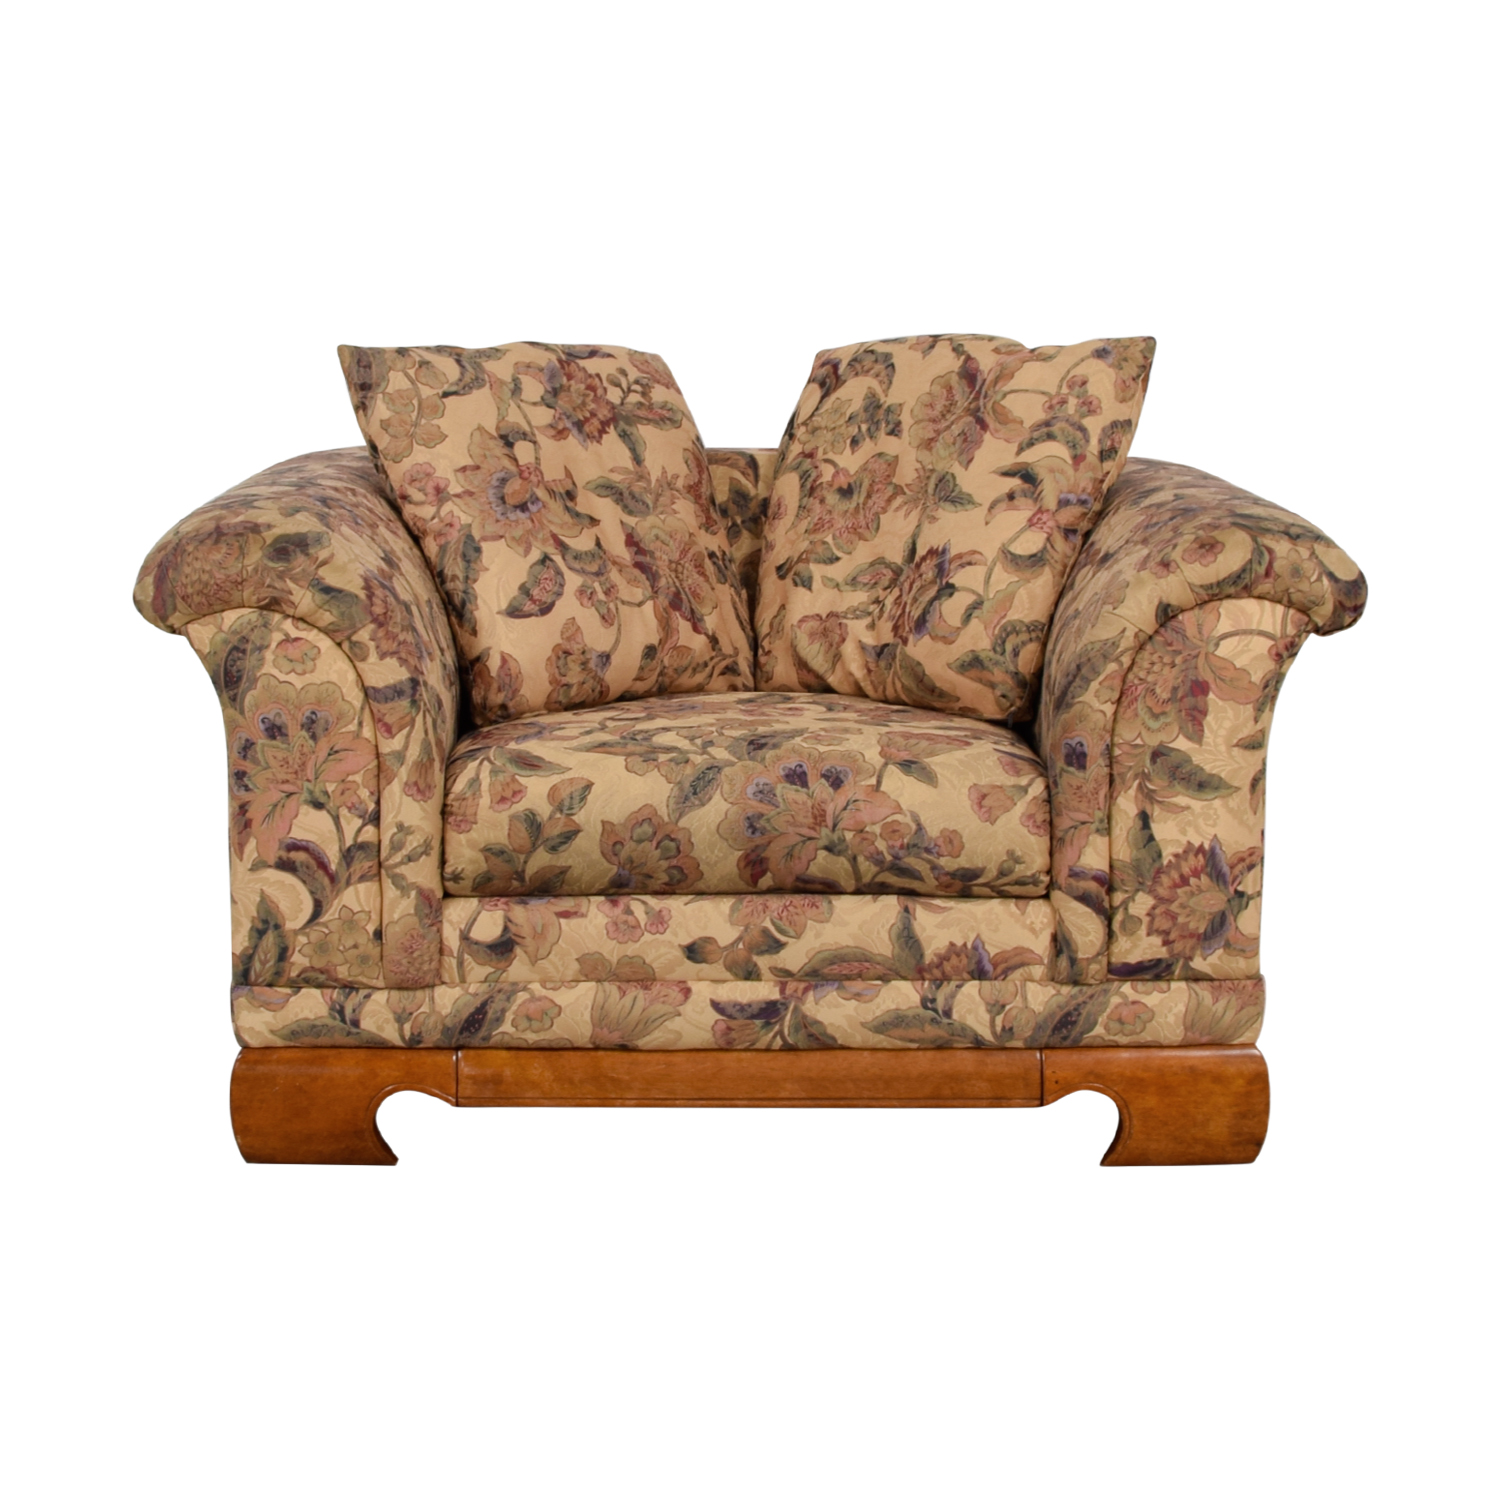 Sealy Furniture Floral Print Accent Chair Sealy Furniture